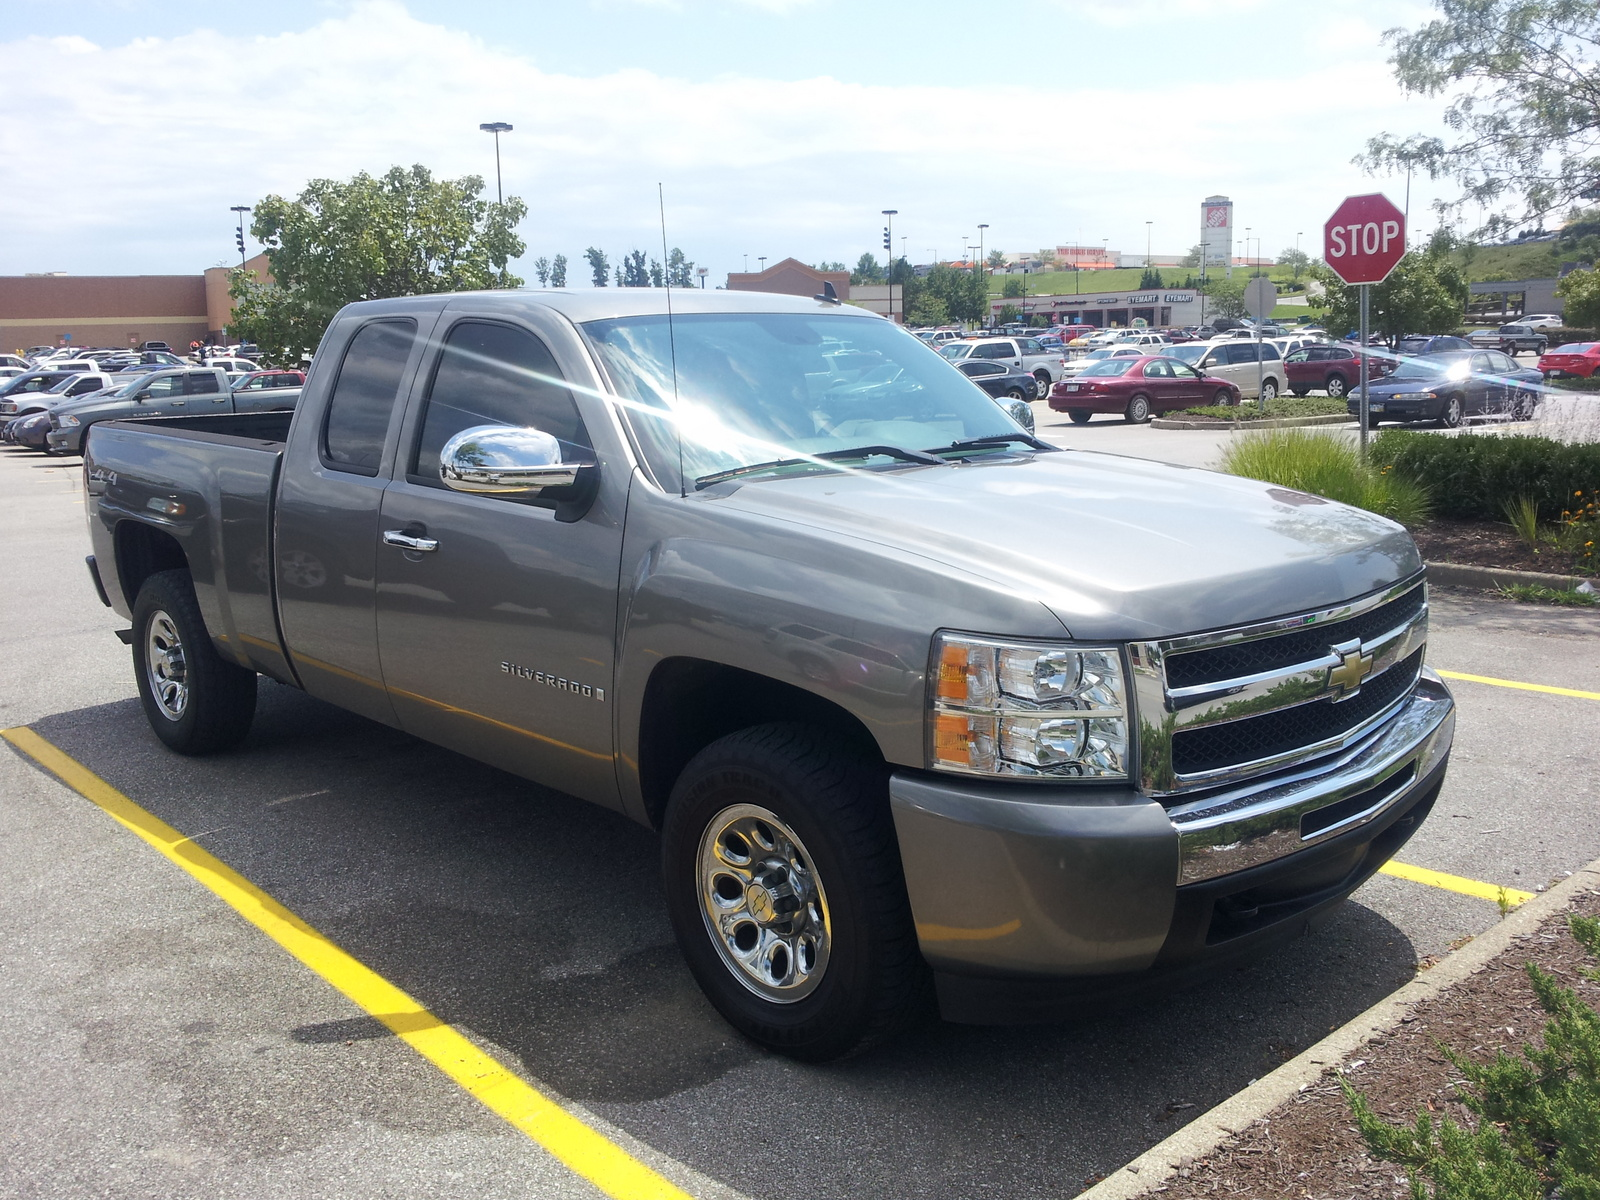 Chevrolet Ss 2014 Price Picture of 2009 Chevrolet Silverado 1500 Work Truck Ext. Cab 4WD ...